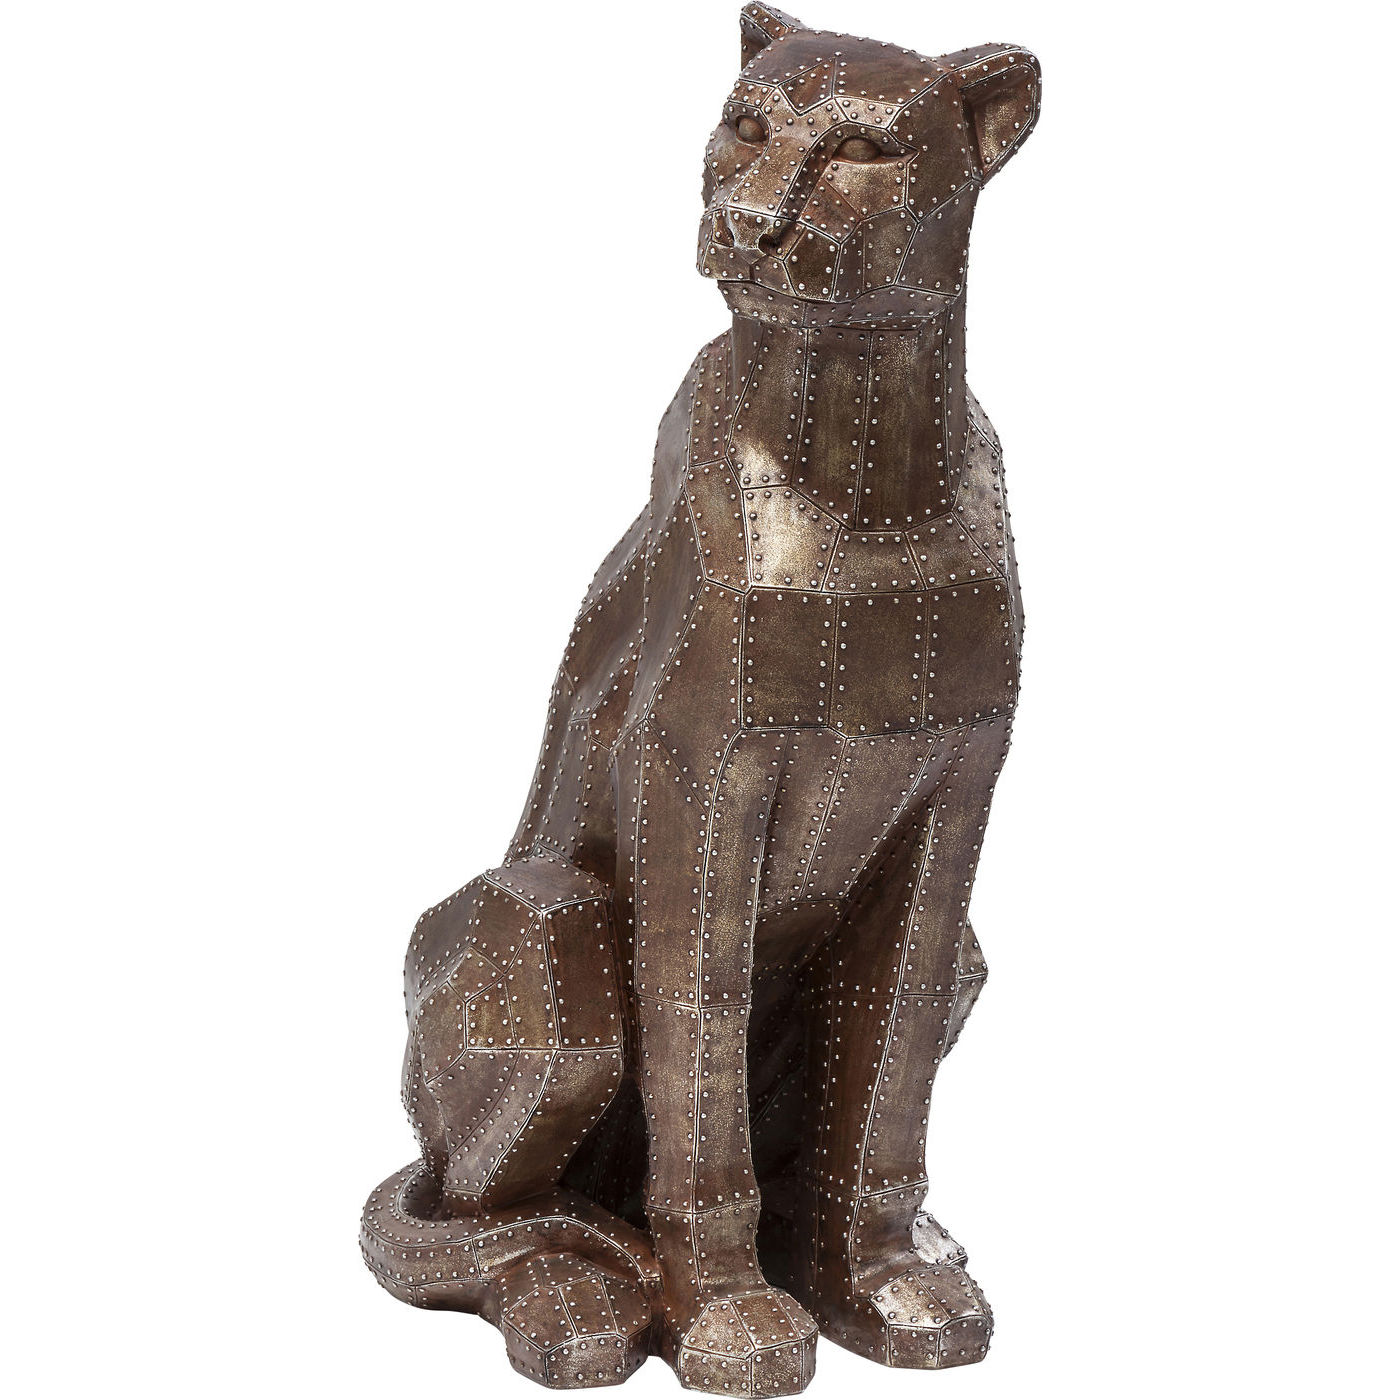 Image of   Kare Design Skulptur, Sitting Cat Rivet Copper